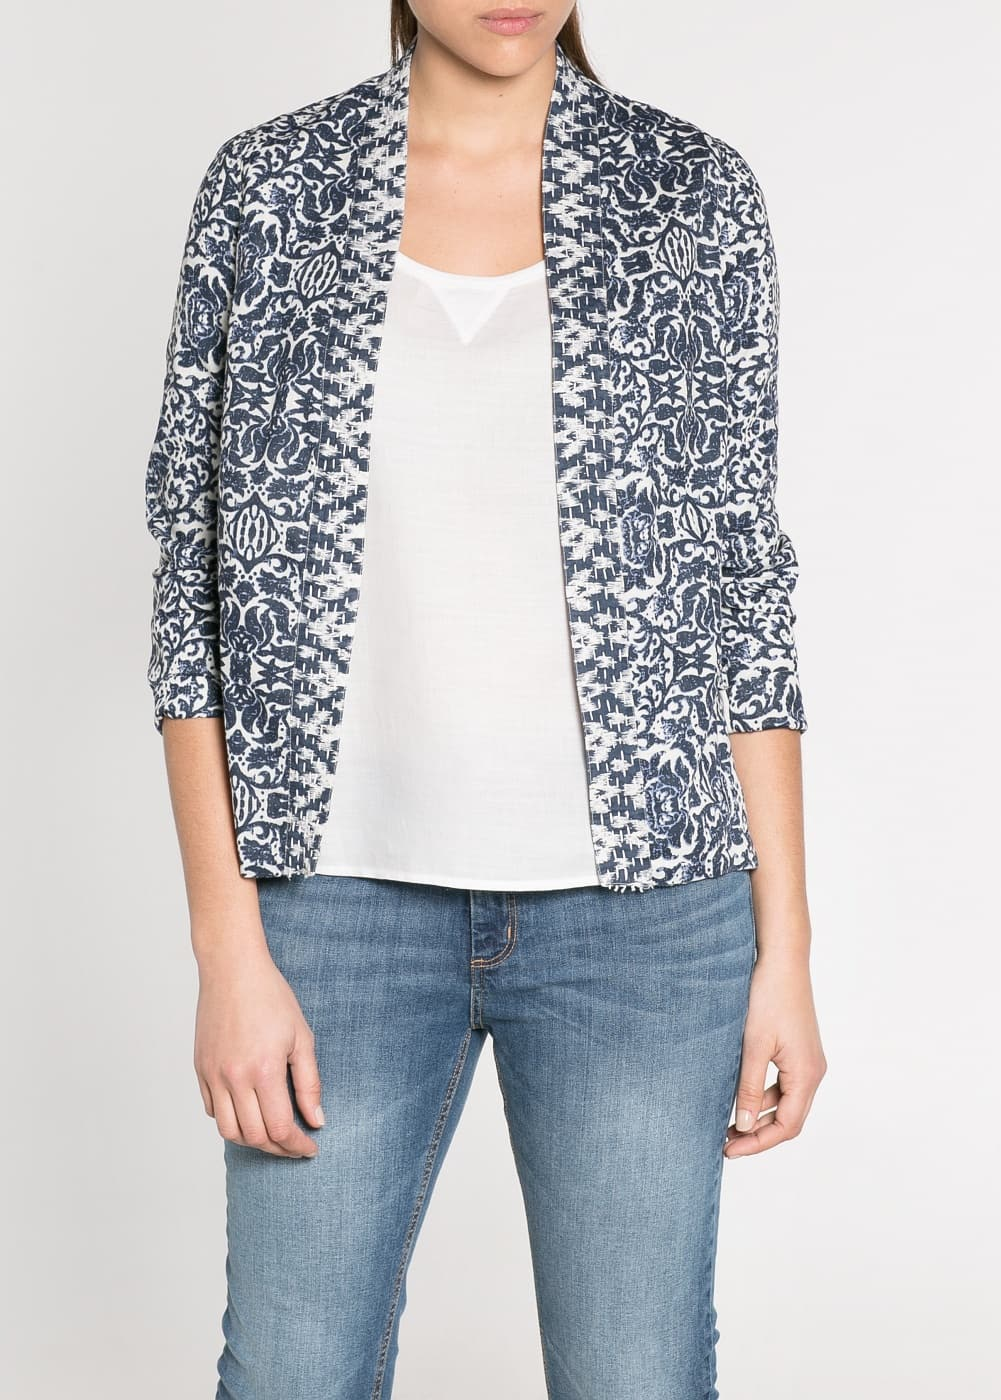 Stitch printed jacket | MANGO